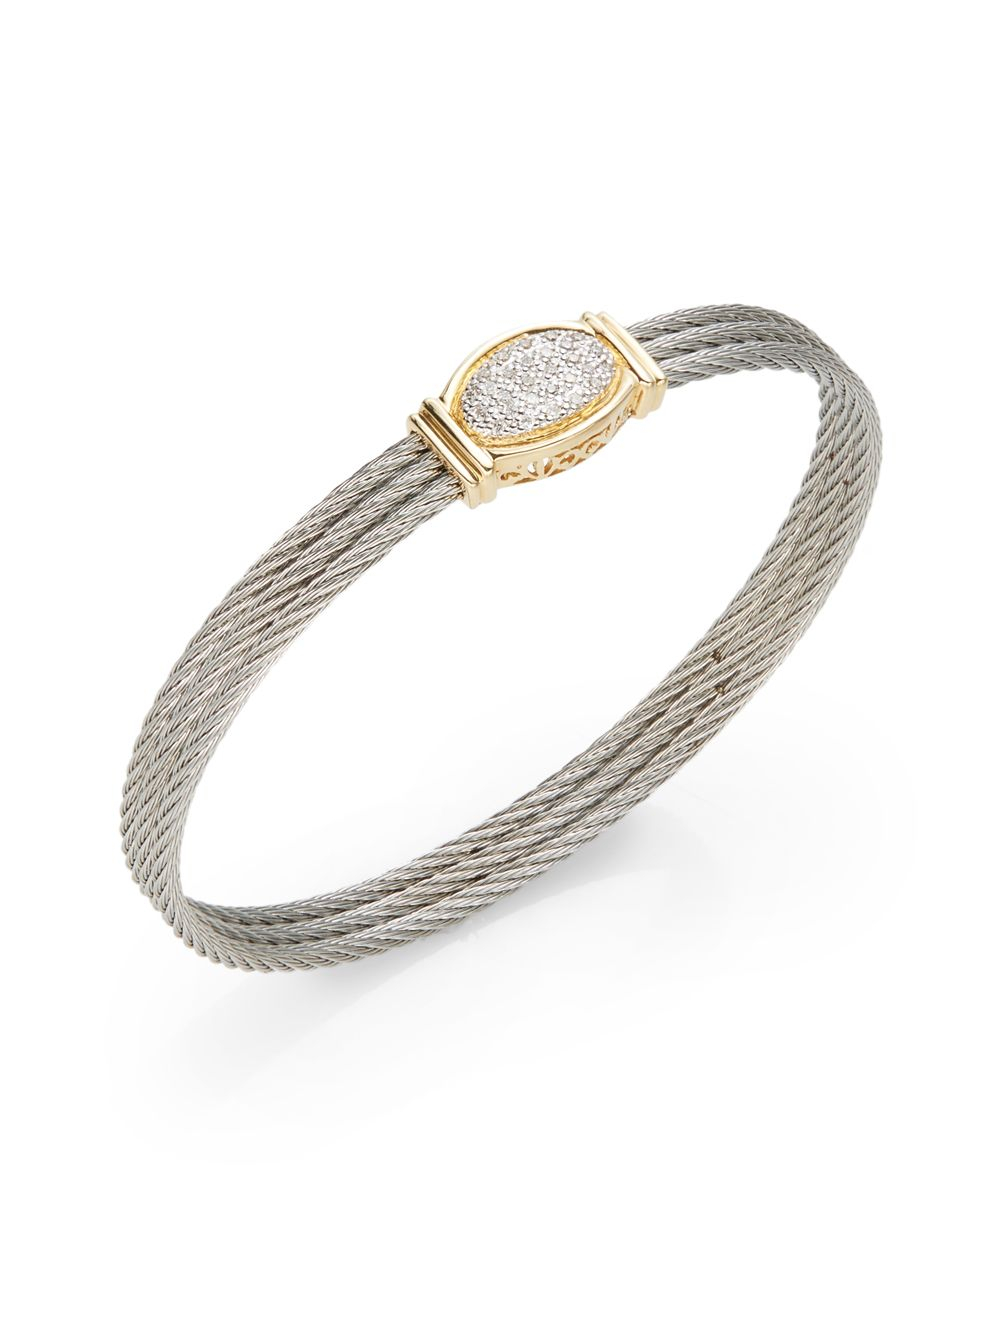 Lyst Charriol Pav 227 Diamond Oval Stainless Steel Cable